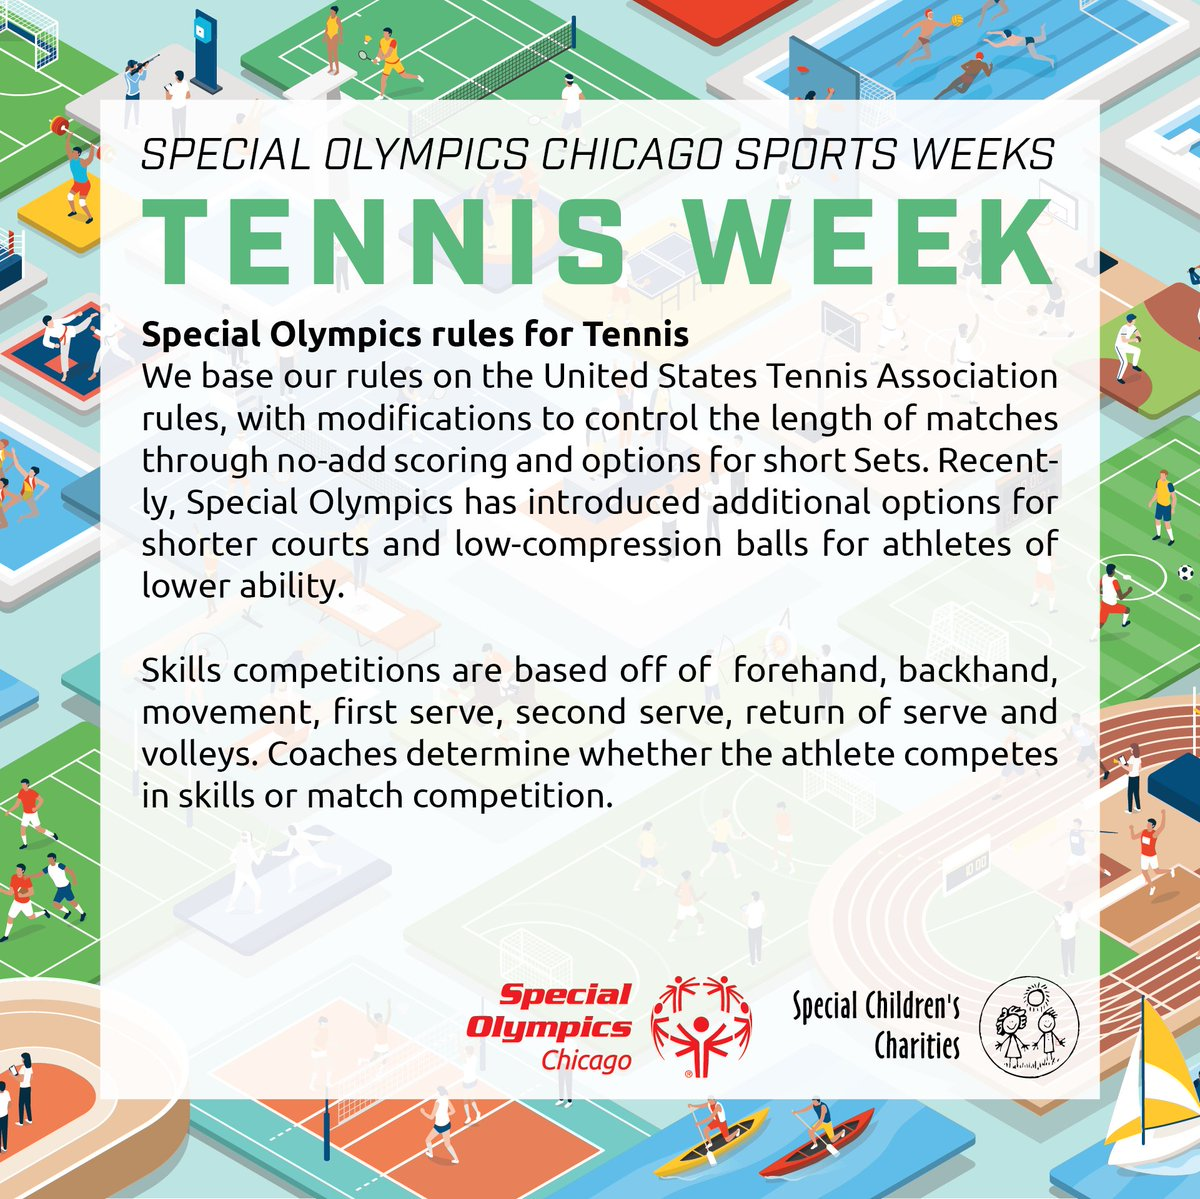 At Special Olympics Chicago, athletes play a modified version of the United States Tennis Association rules. Athletes can take part in Skills Competitions, Singles, Doubles, Mixed Doubles. https://t.co/fq4UohD8h7